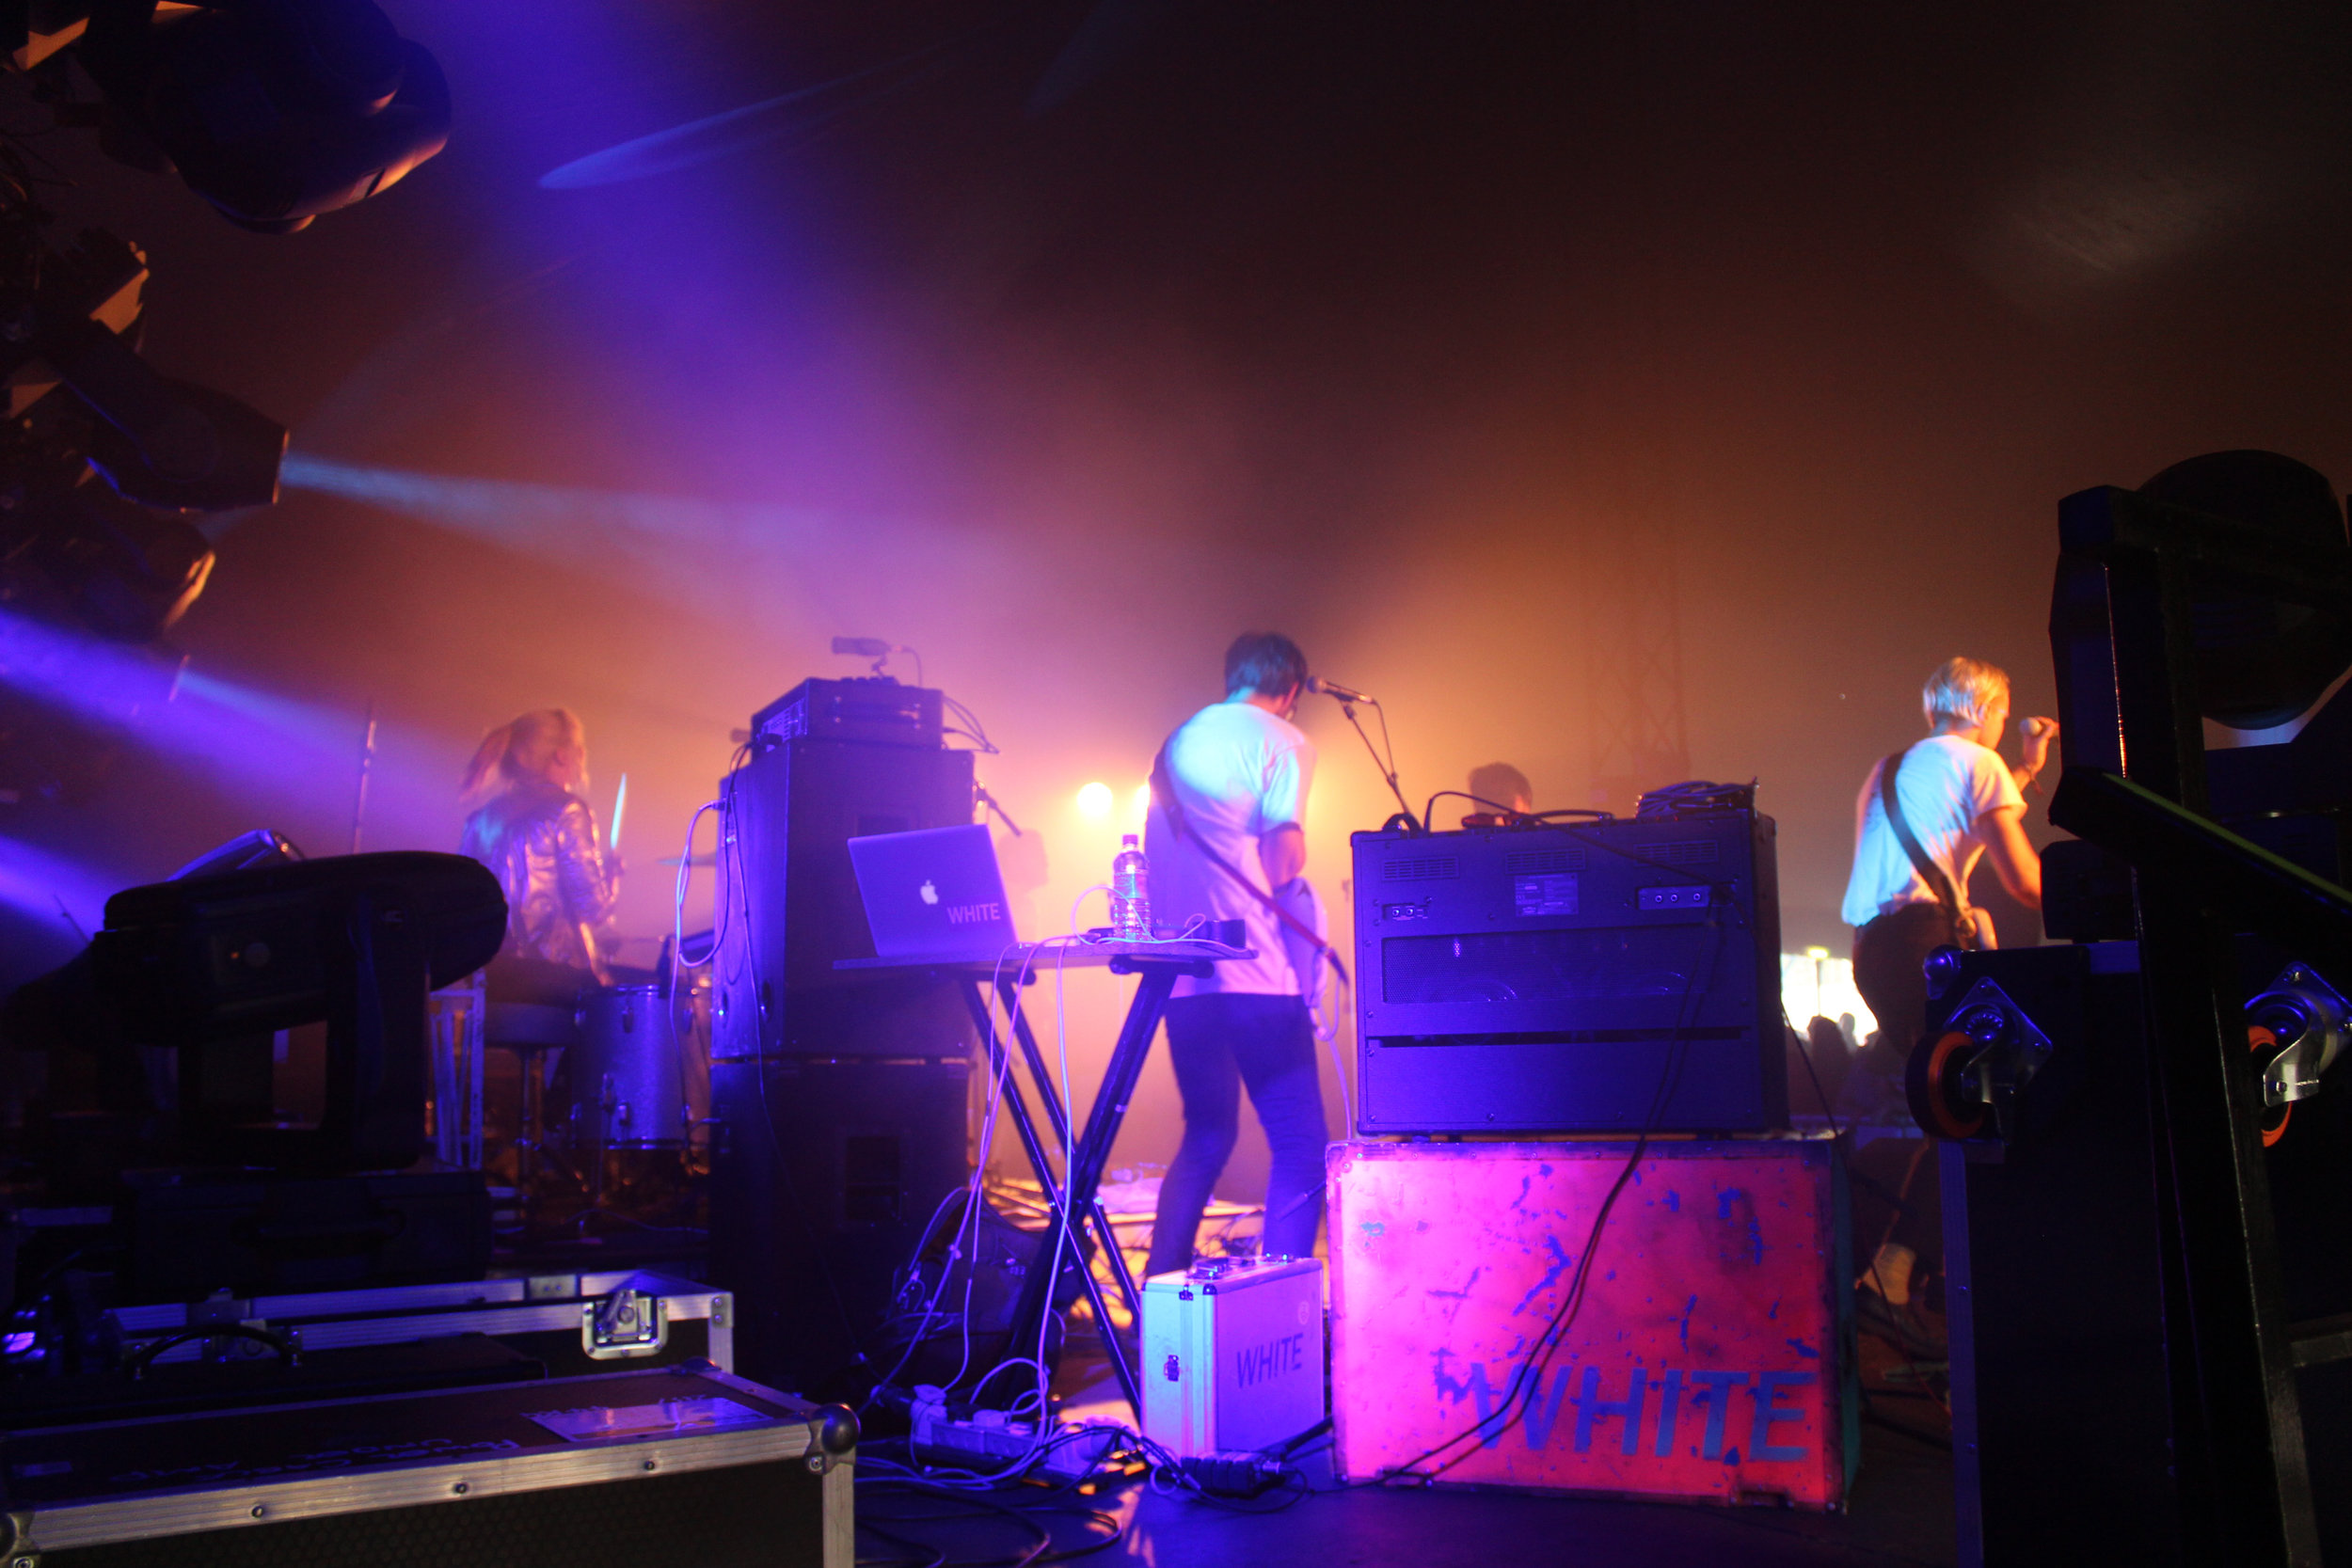 Great photos of White from the back of the stage at Electric Fields.